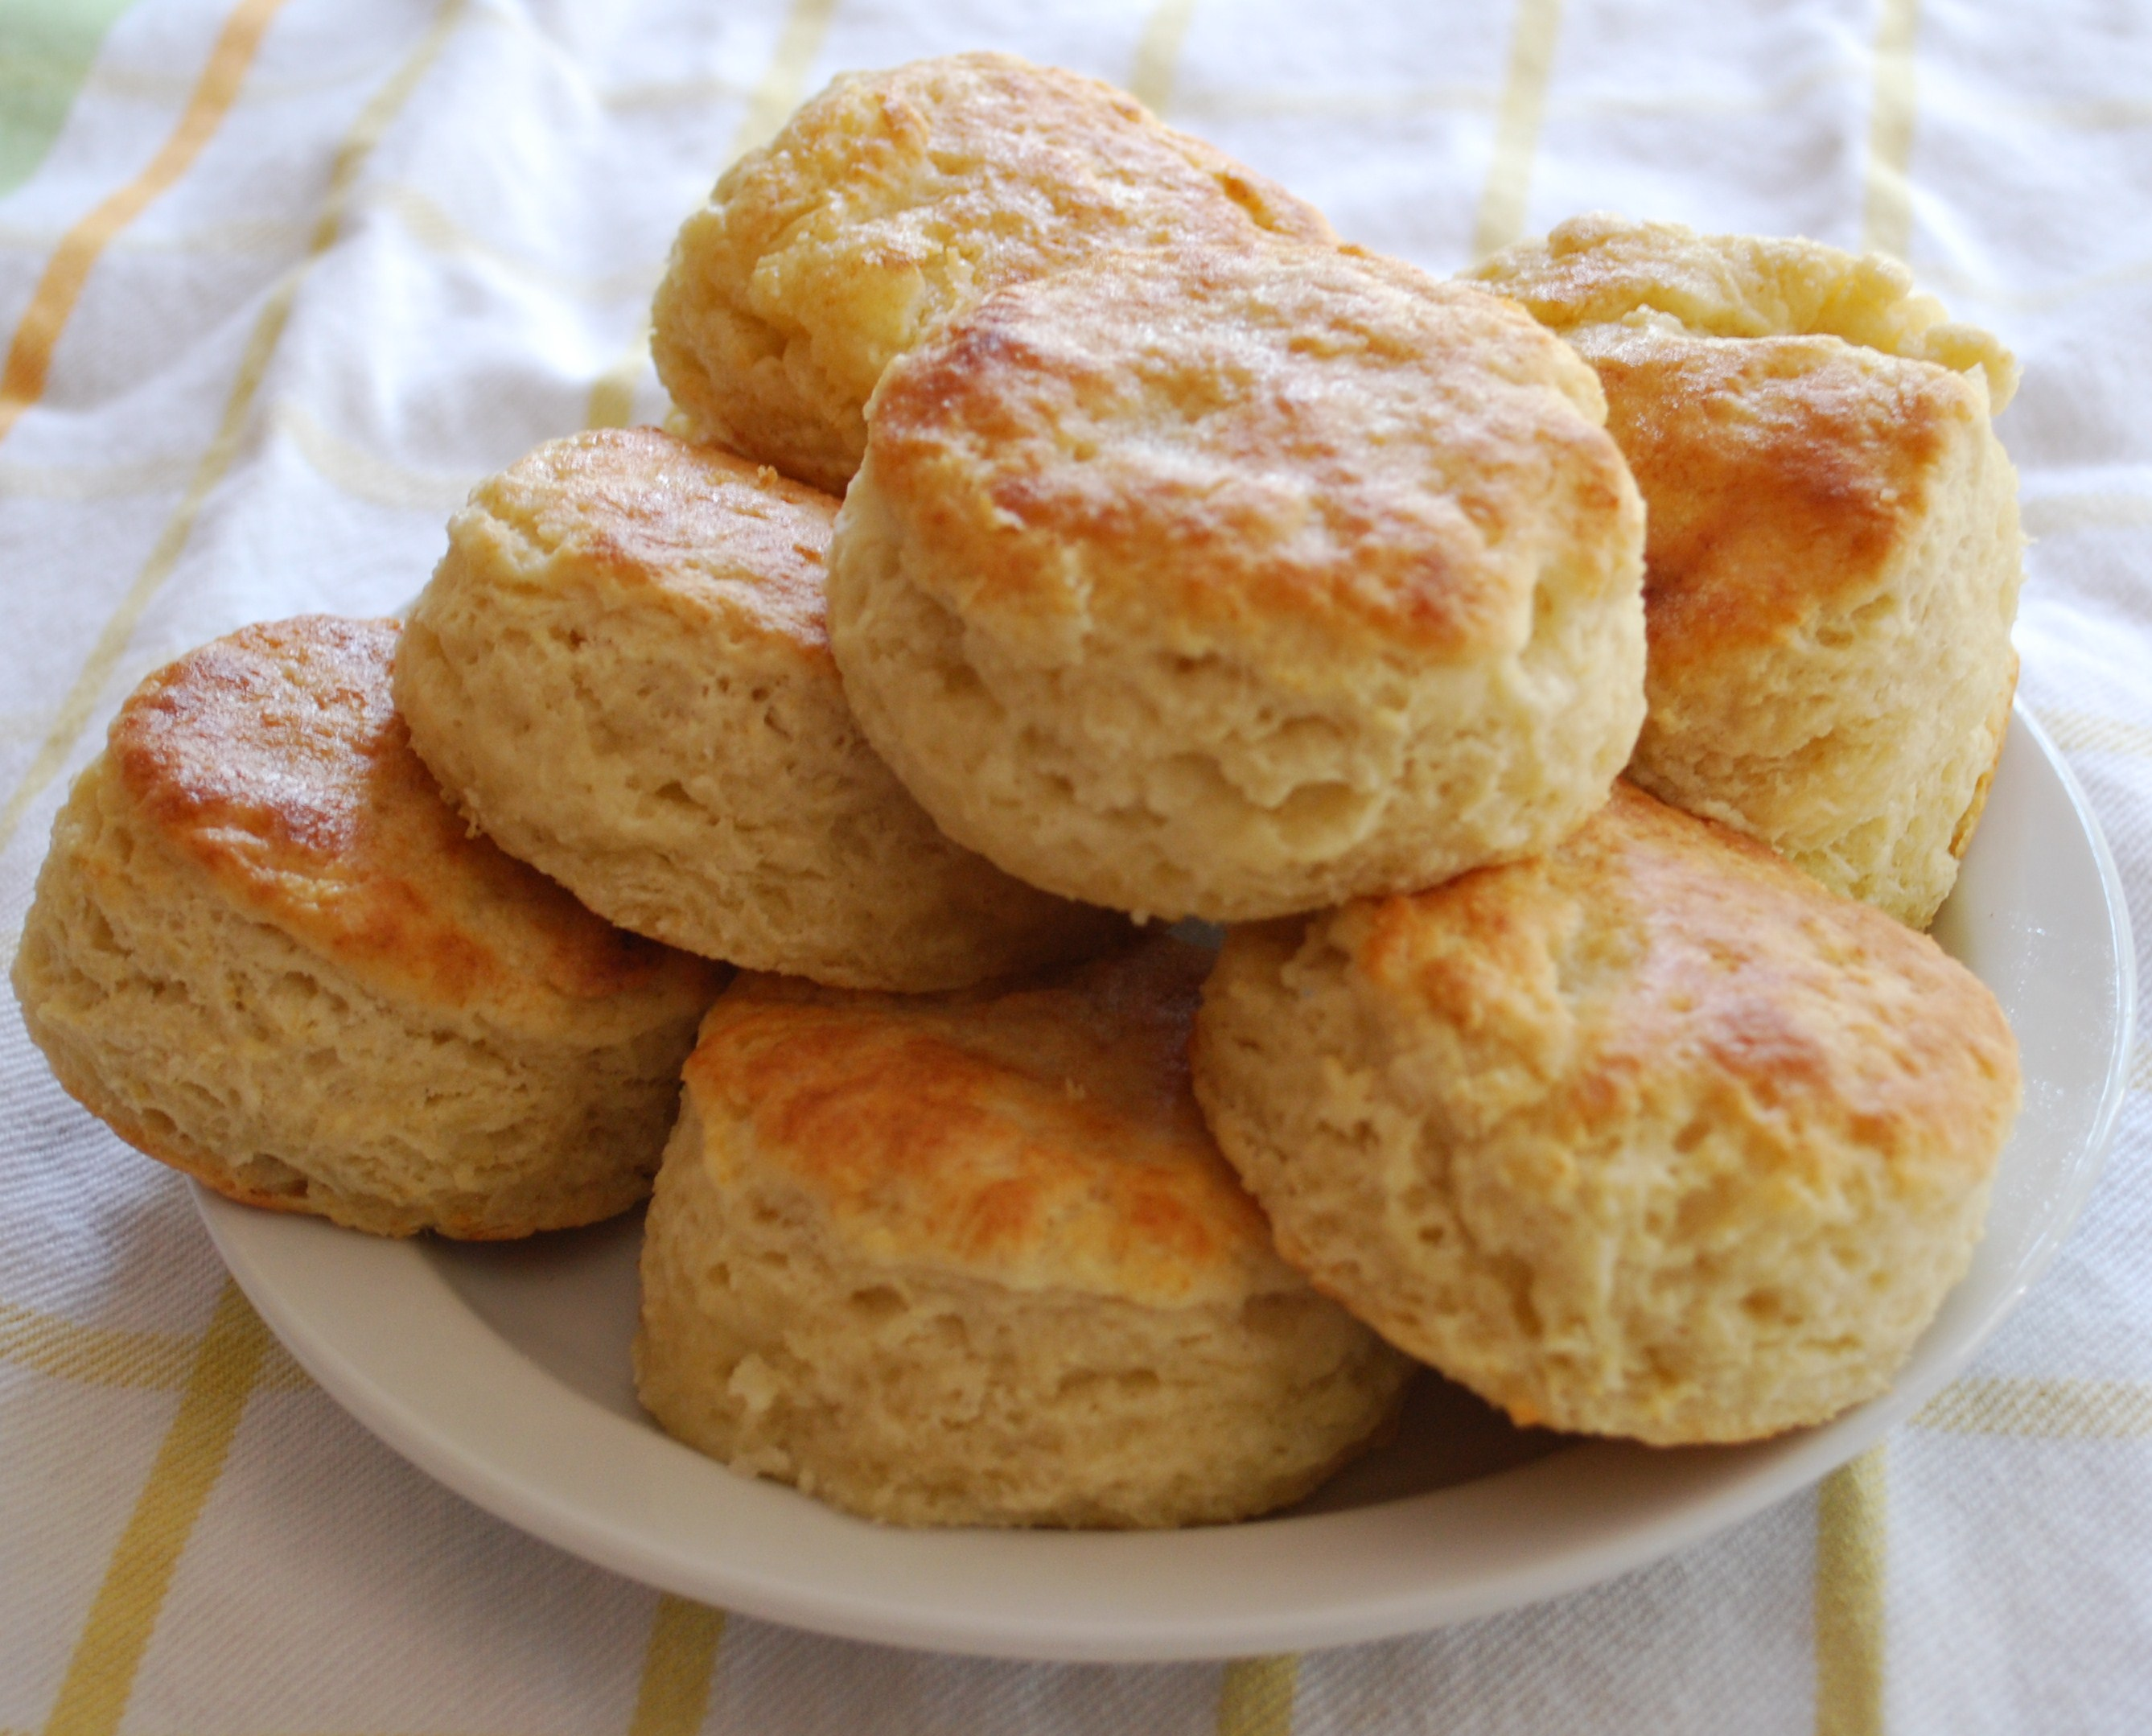 Biscuit finale